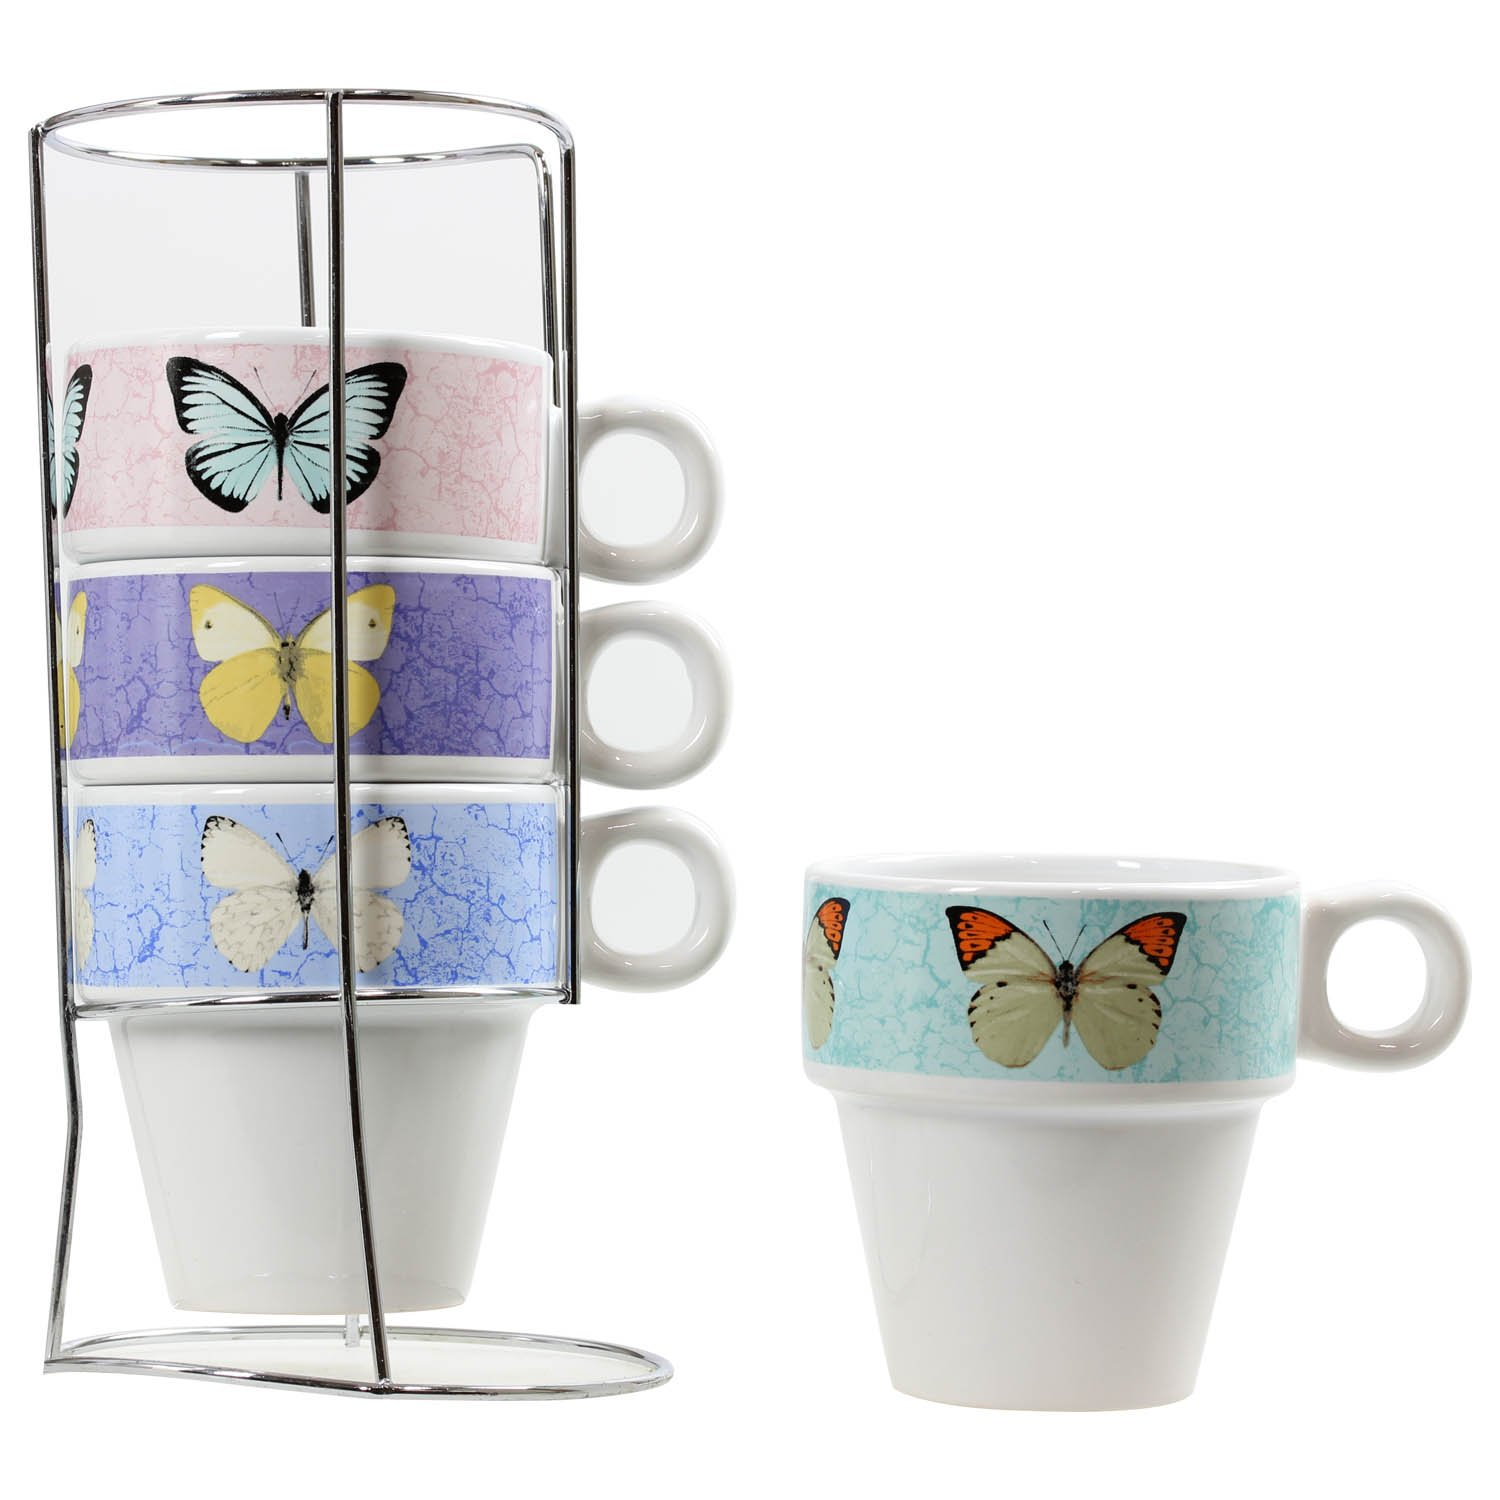 4 Butterfly Design Stacking Tea Coffee Tea Cups Porcelain Mugs In Metal Holder Rsw